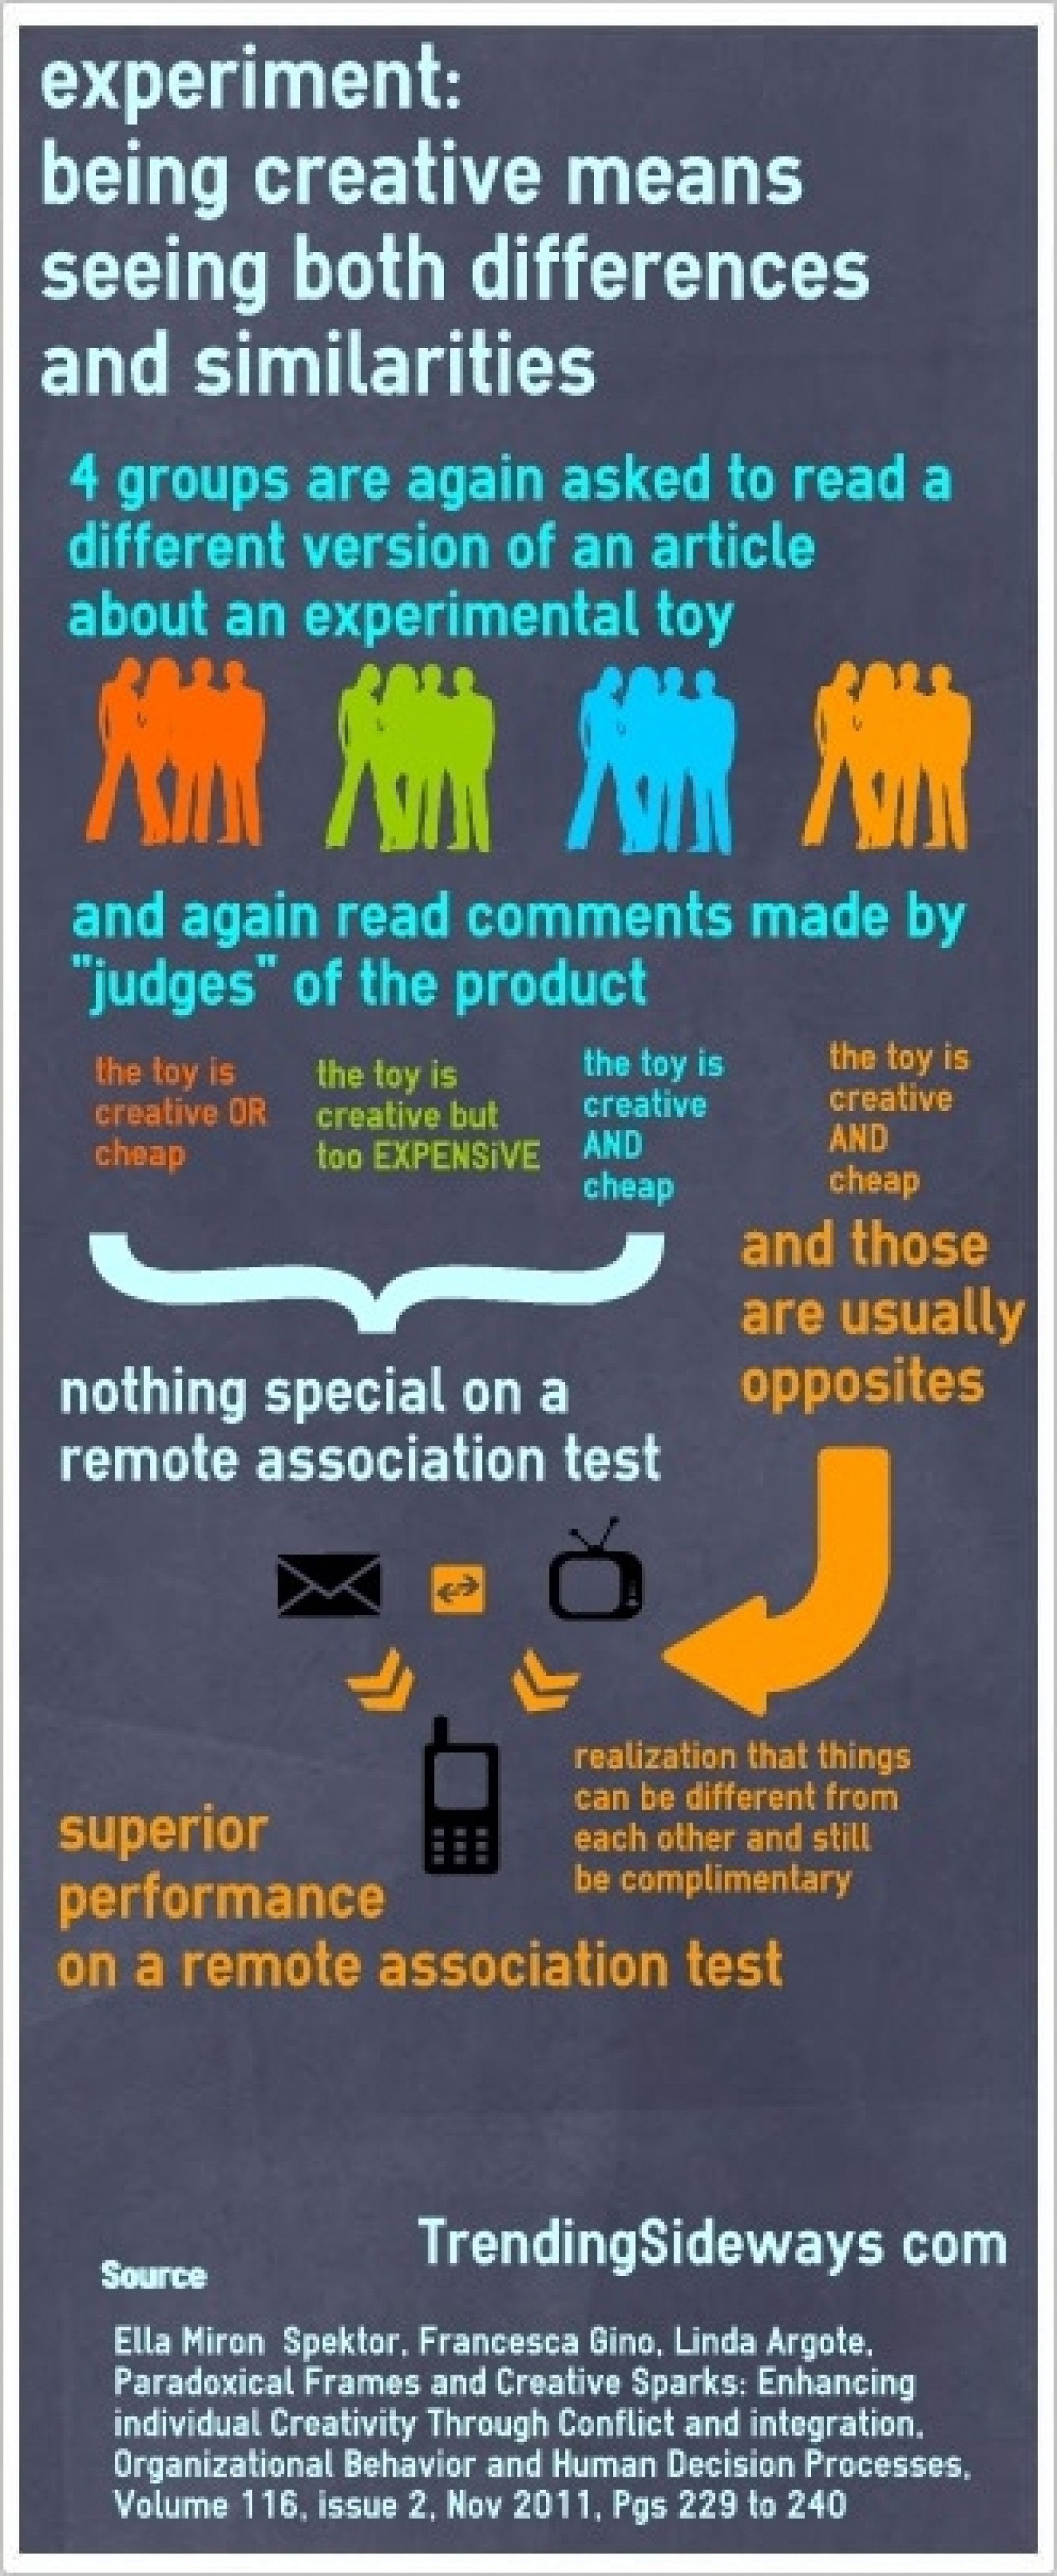 Creativity demands seeing both differences and similarities Infographic